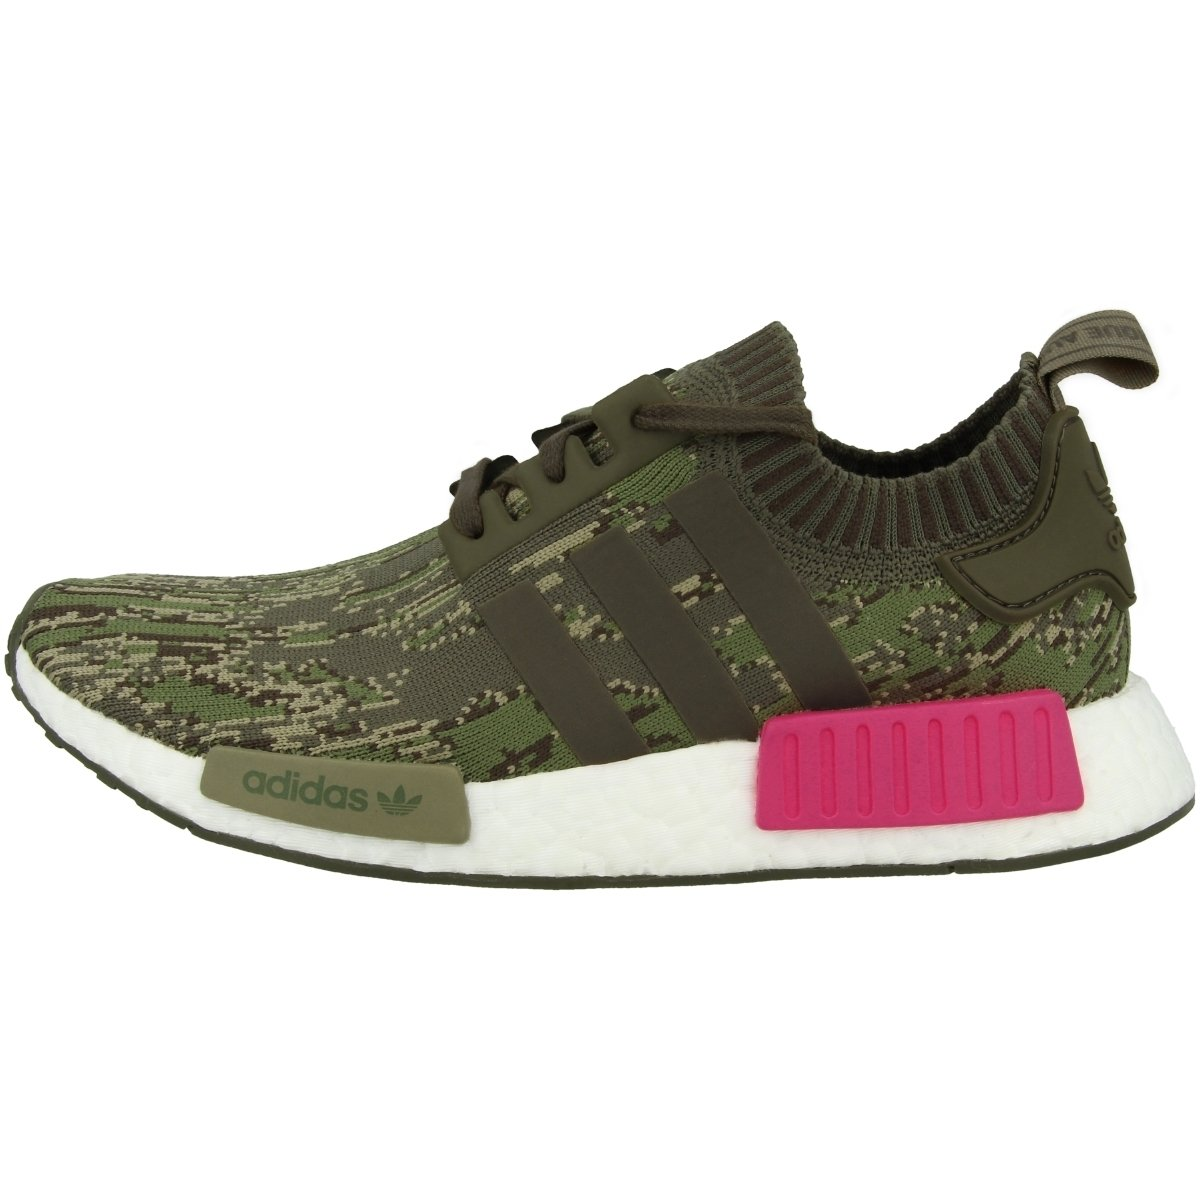 reputable site b8370 2de7d Galleon - Adidas Originals NMDR1 Pk Mens Running Trainers Sneakers Shoes  Prime Knit (UK 9 US 9.5 EU 43 13, Utility Green Pink BZ0222)